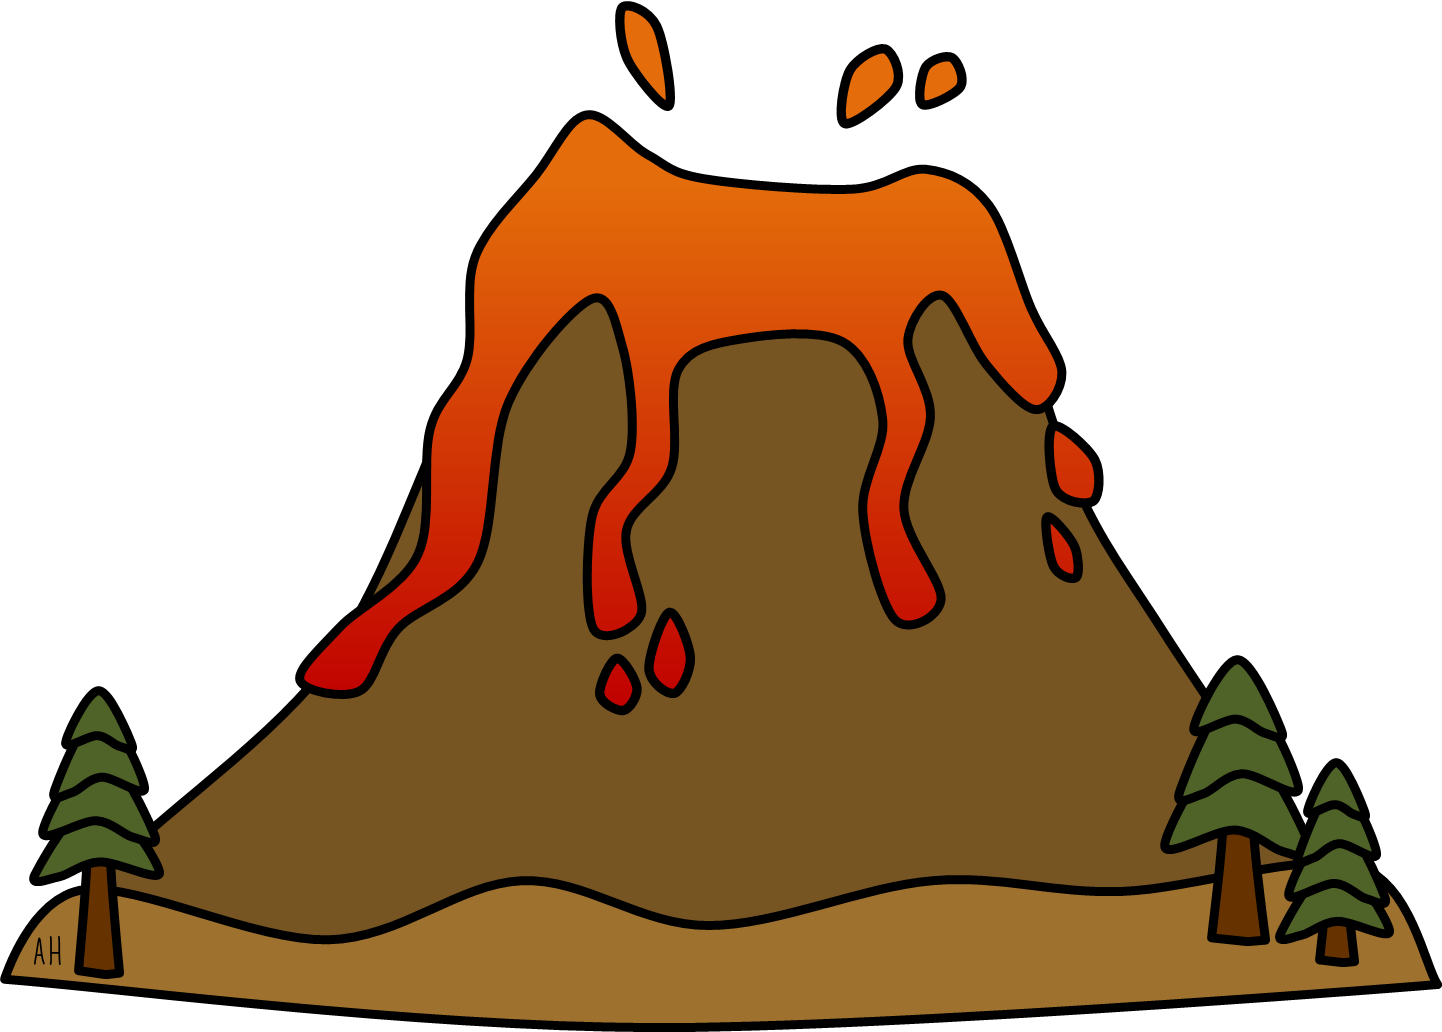 Volcano Clip Art Images & Pictures - Becuo